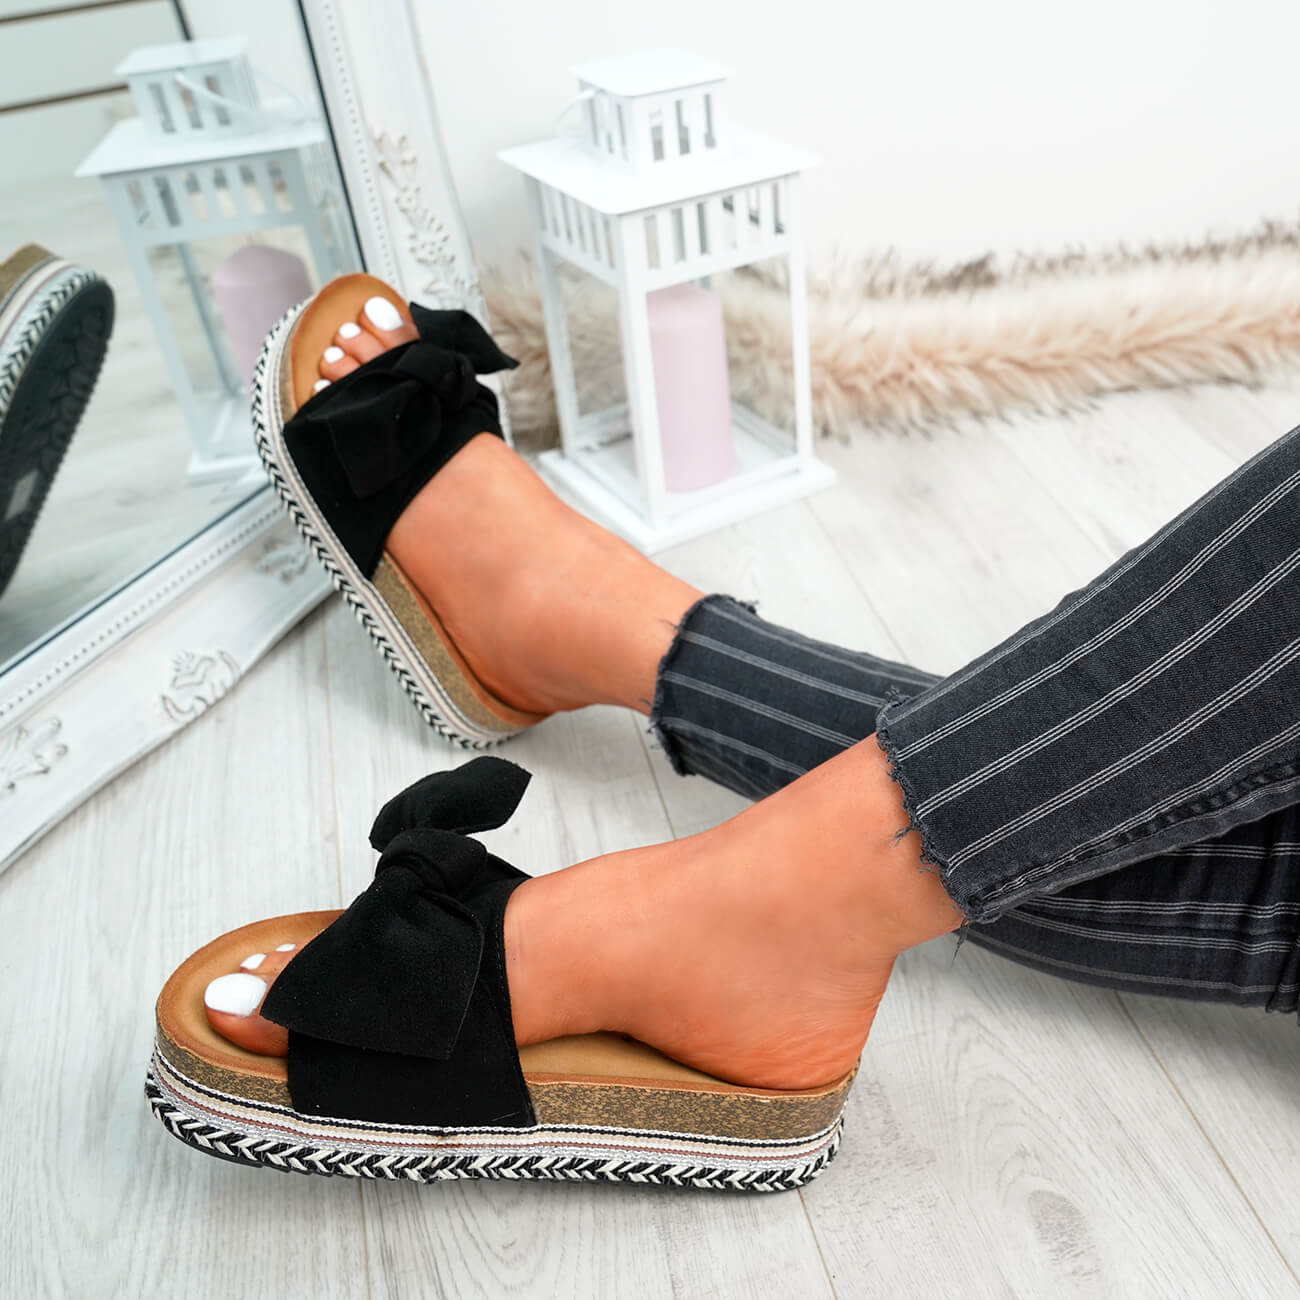 WOMENS-LADIES-BOW-SLIDERS-SLIP-ON-FLATFORMS-SUMMER-PARTY-SANDALS-SHOES-SIZE thumbnail 10